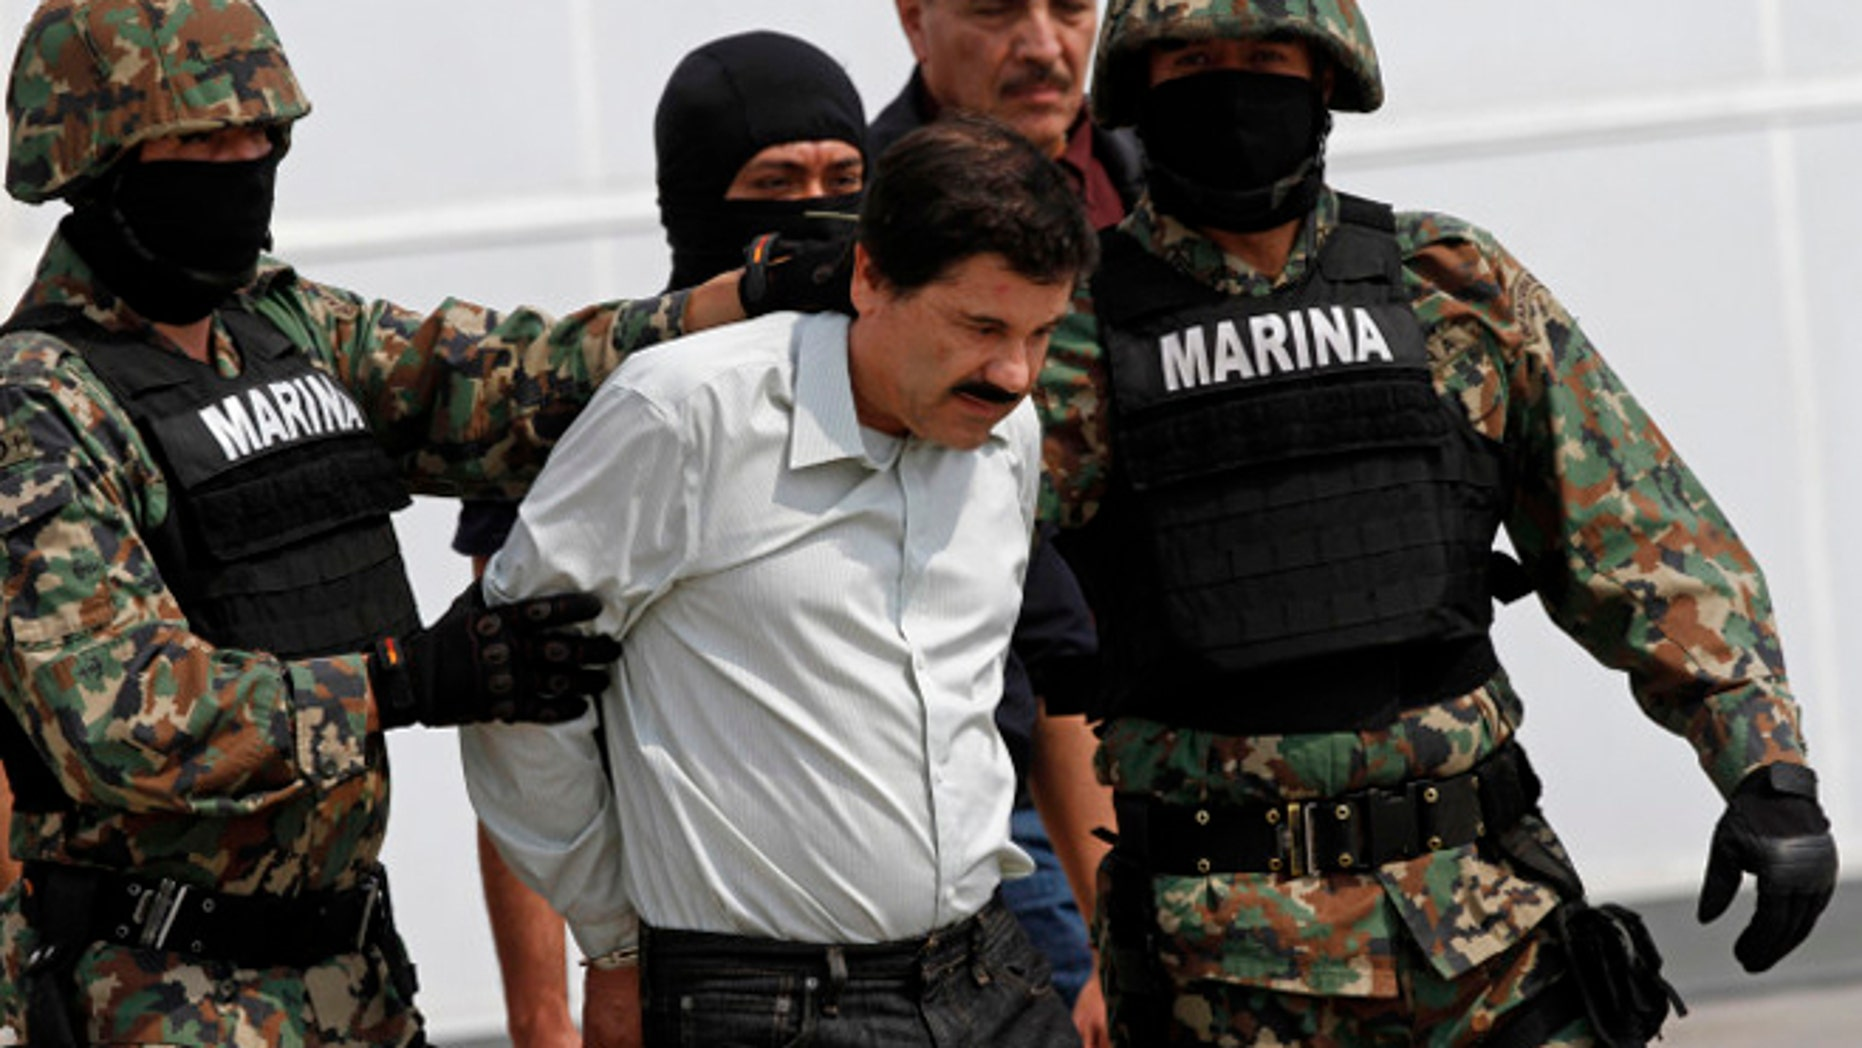 """Joaquin """"El Chapo"""" Guzman is escorted to a helicopter in handcuffs by Mexican navy marines at a navy hanger in Mexico City, Saturday, Feb. 22, 2014. A senior U.S. law enforcement official said Saturday, that Guzman, the head of MexicoÃs Sinaloa Cartel, was captured alive overnight in the beach resort town of Mazatlan. Guzman faces multiple federal drug trafficking indictments in the U.S. and is on the Drug Enforcement AdministrationÃs most-wanted list. (AP Photo/Marco Ugarte)"""